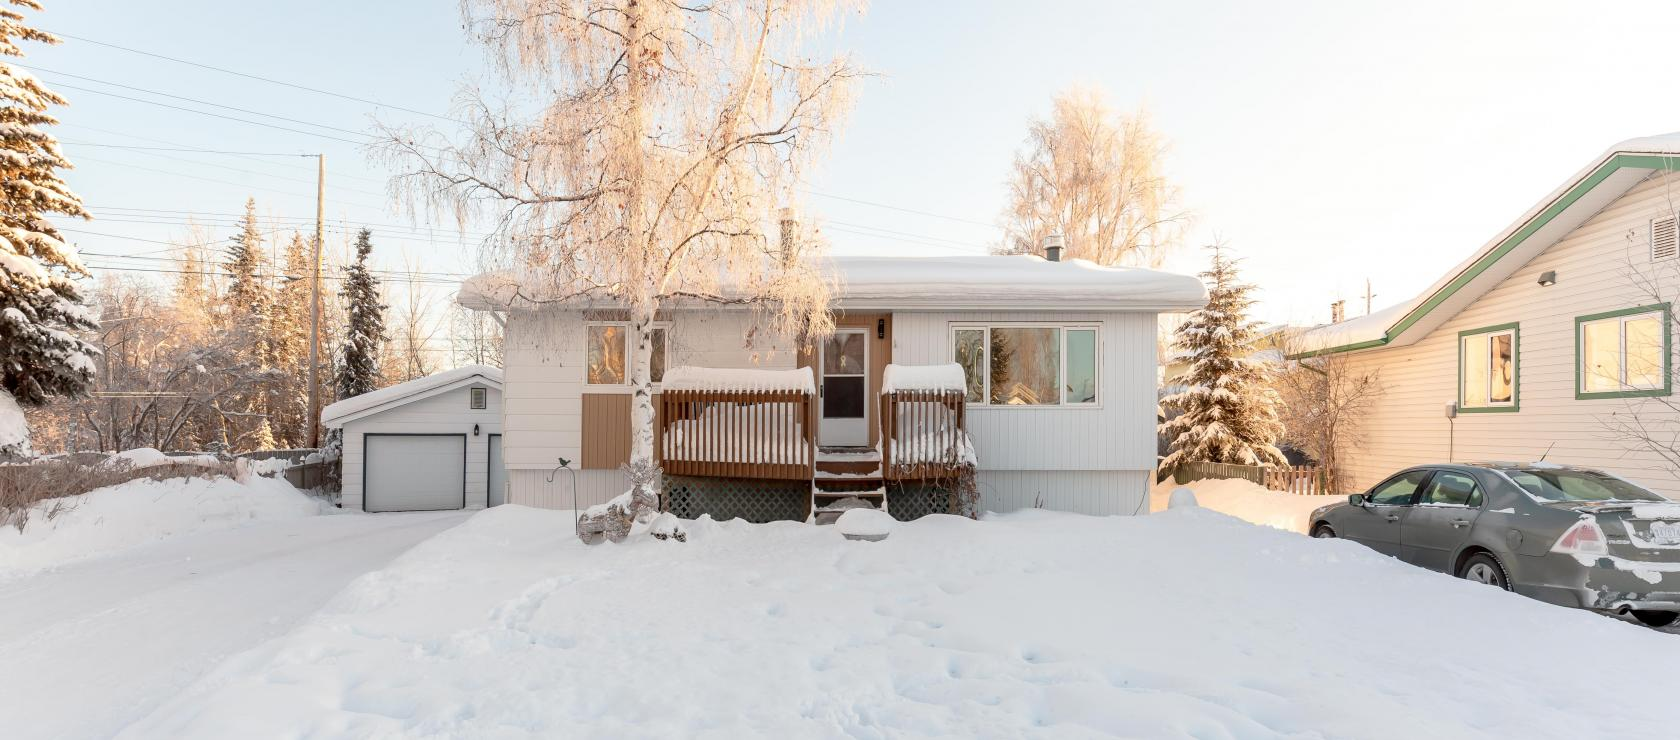 7 Negus Place, Con Road, Yellowknife 2